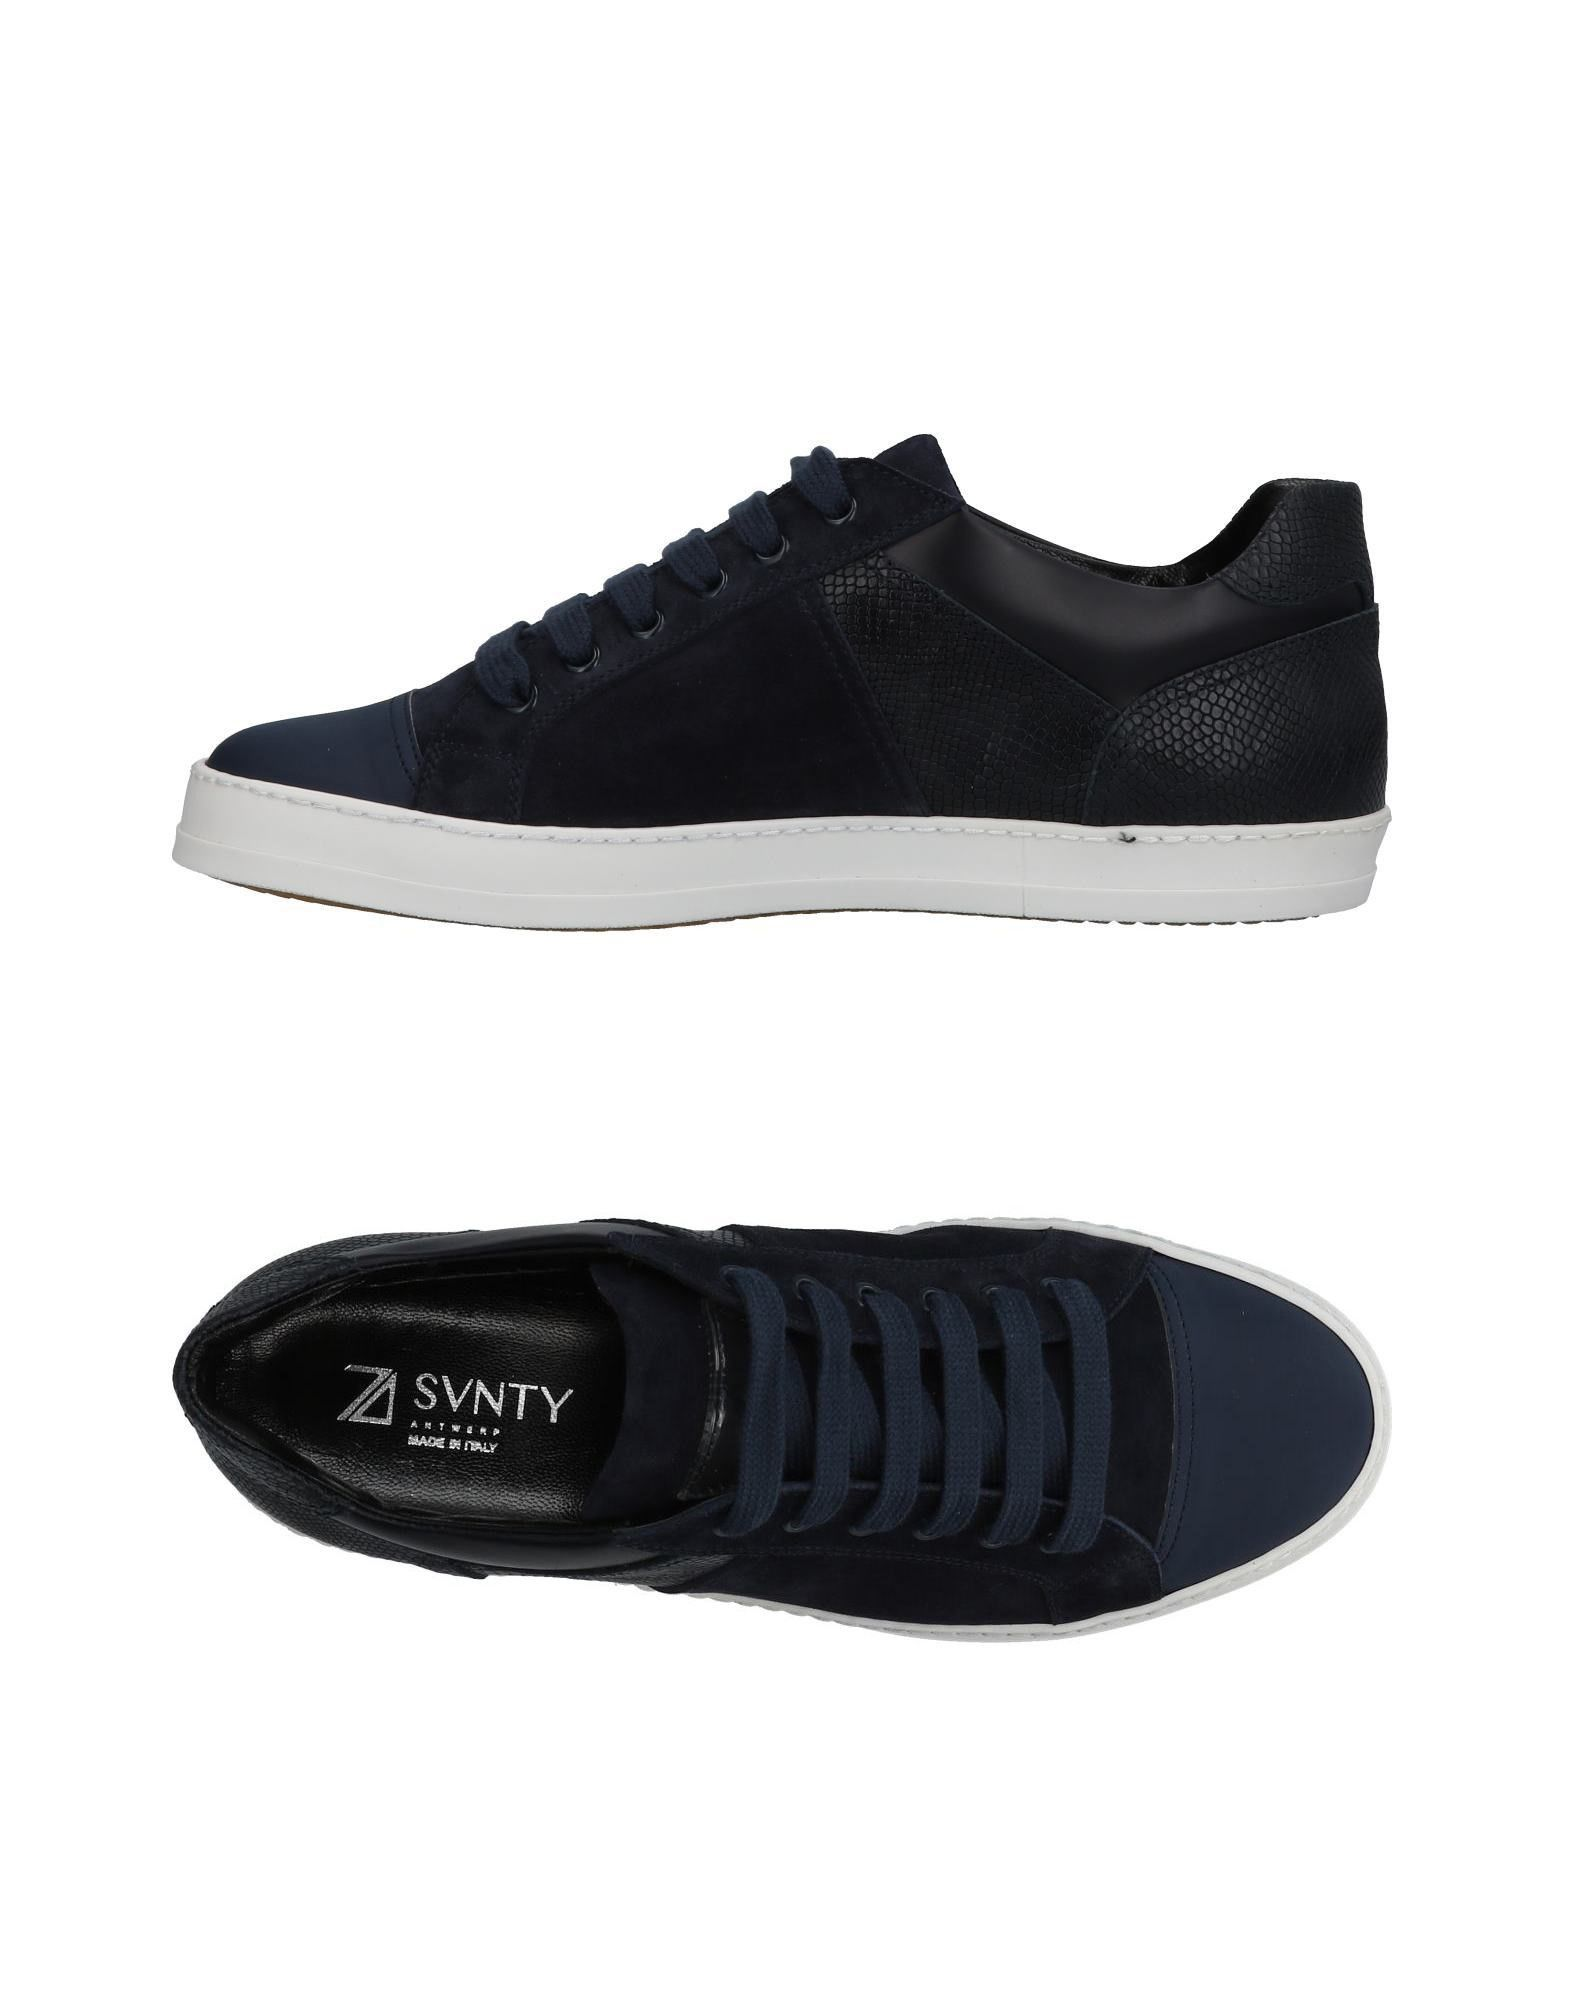 Sneakers Svnty Homme - Sneakers Svnty sur